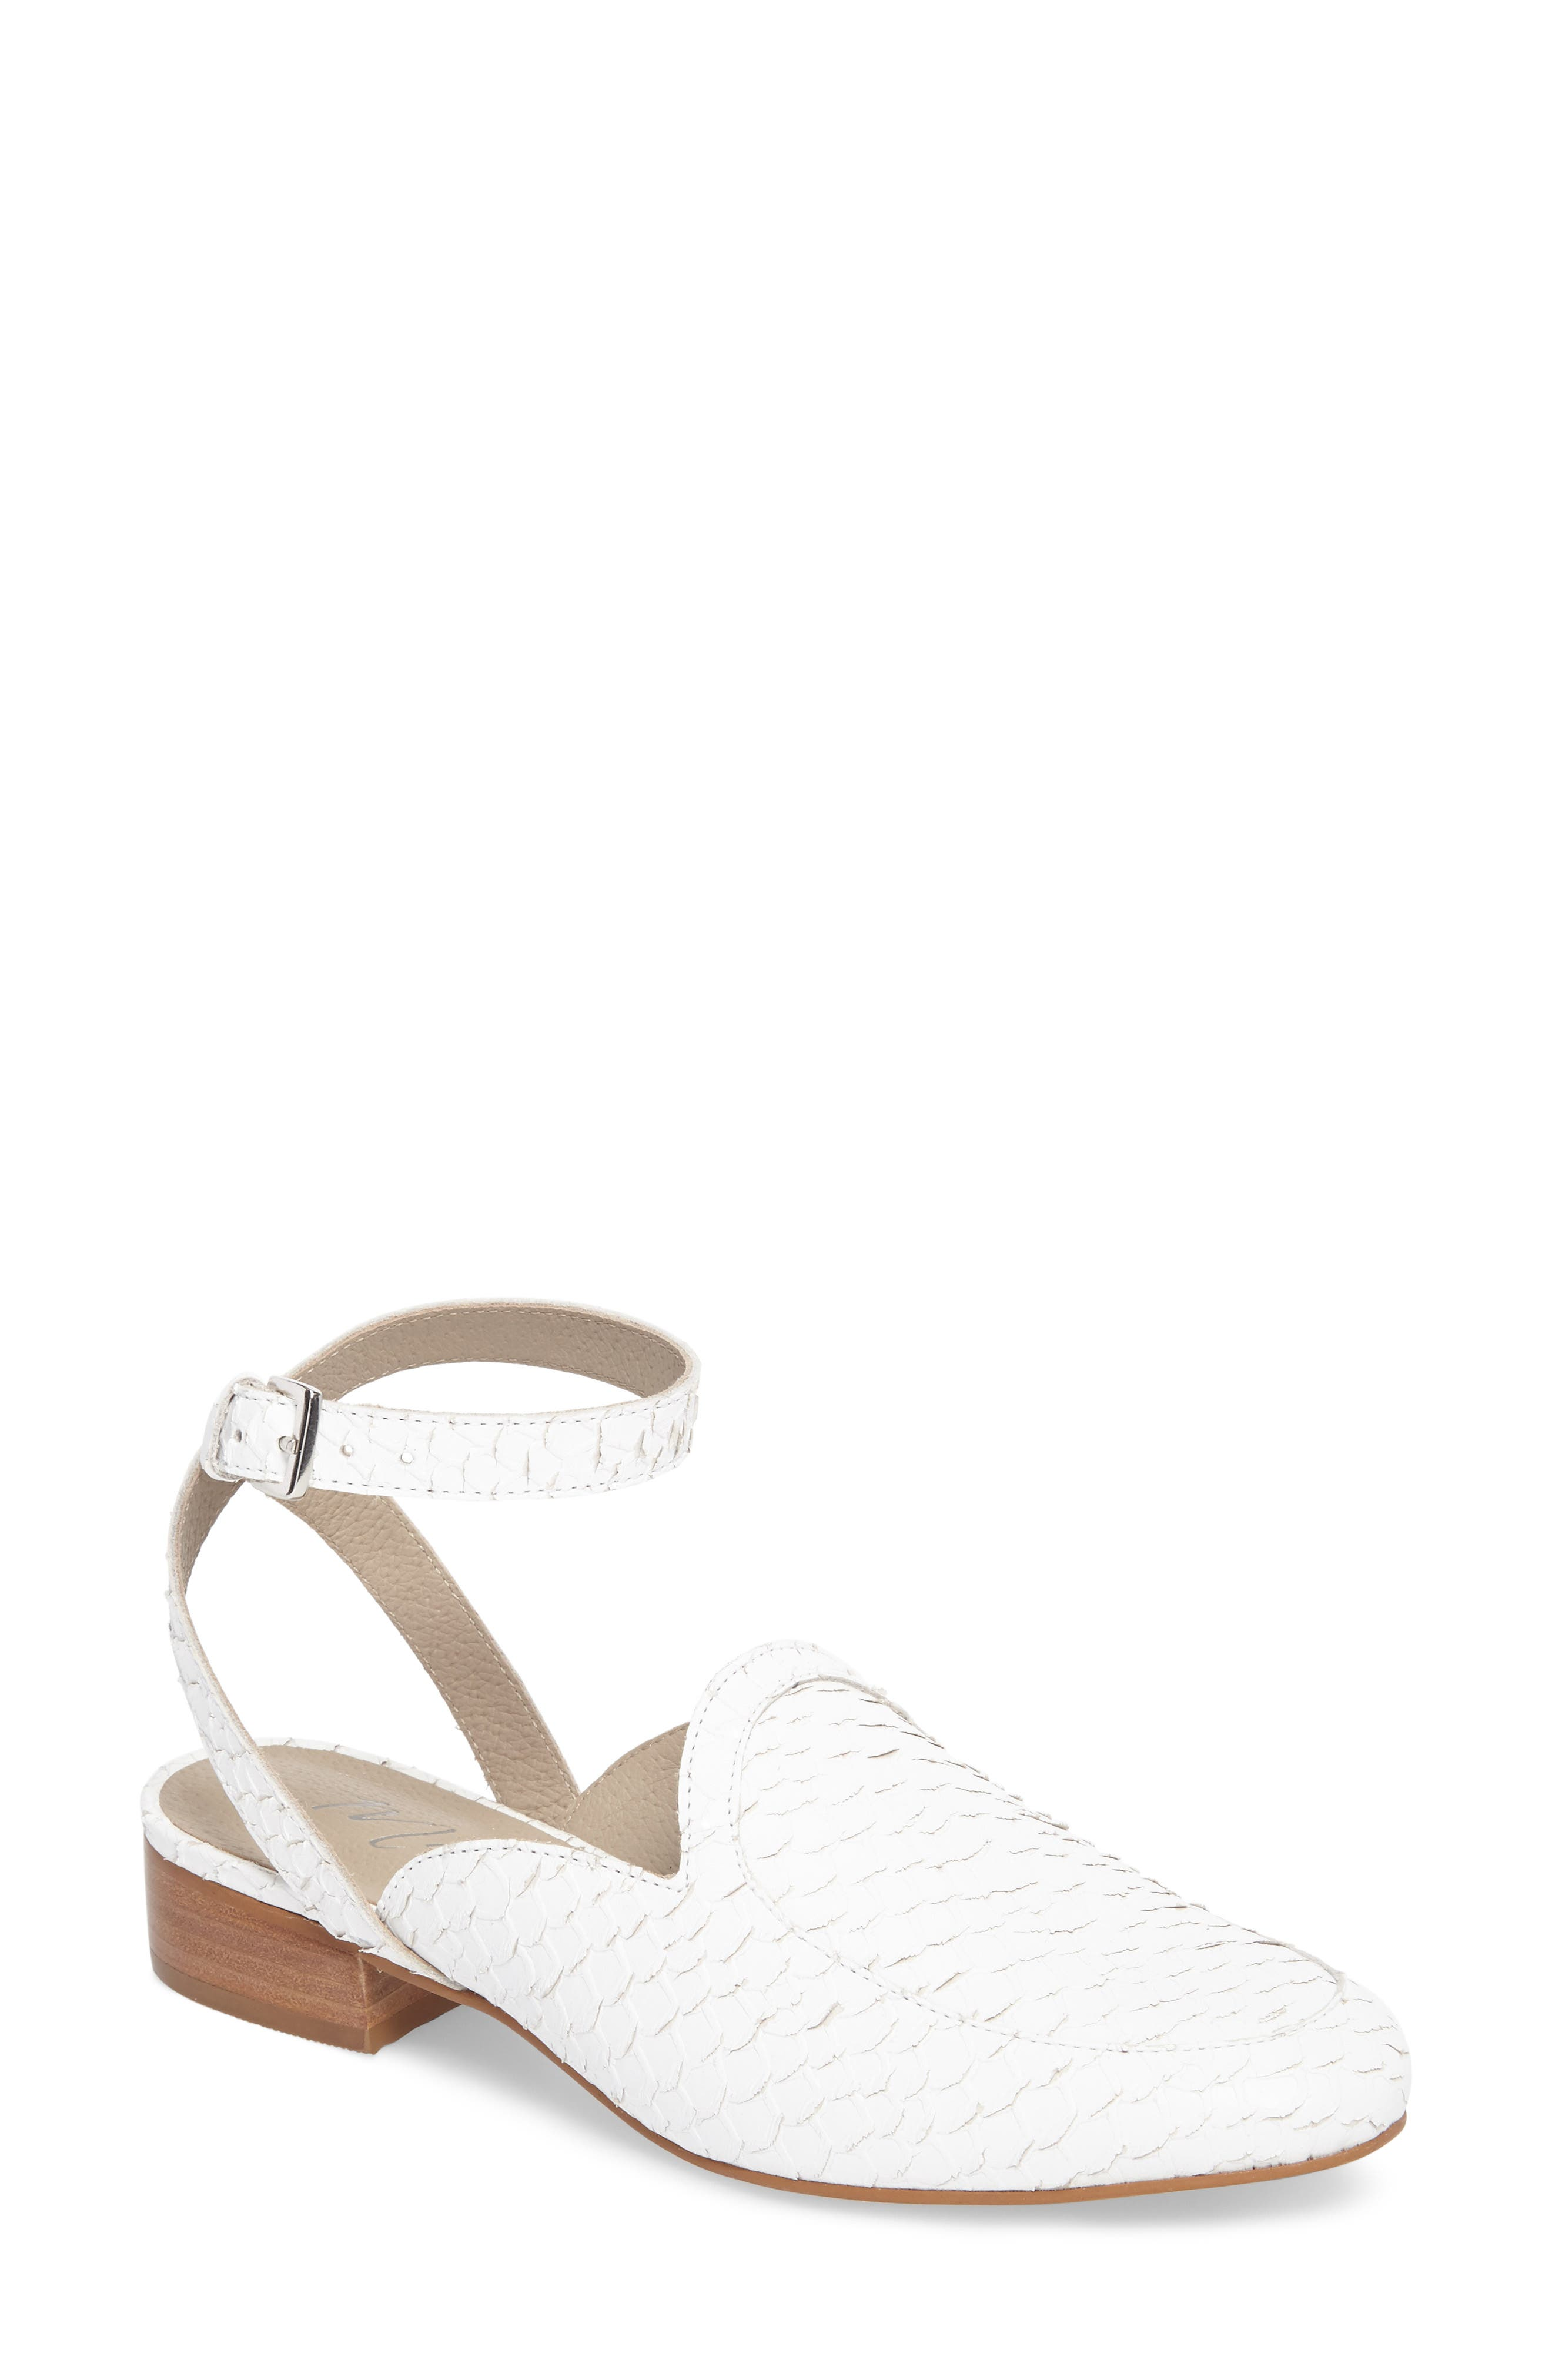 Half Moon Ankle Strap Loafer,                         Main,                         color, WHITE LEATHER